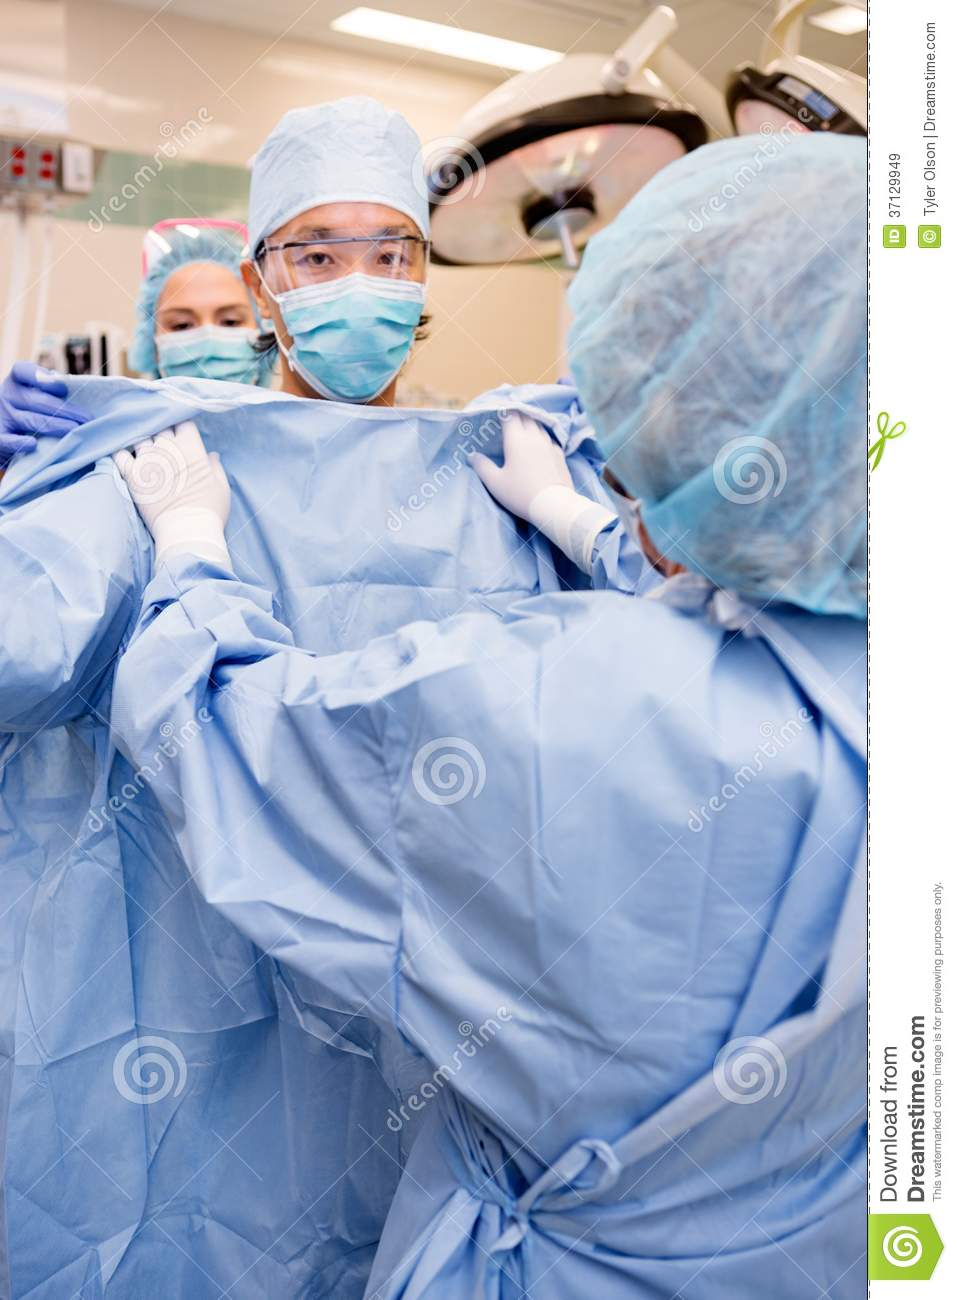 Dorable How To Put On A Sterile Gown Component - Wedding and flowers ...